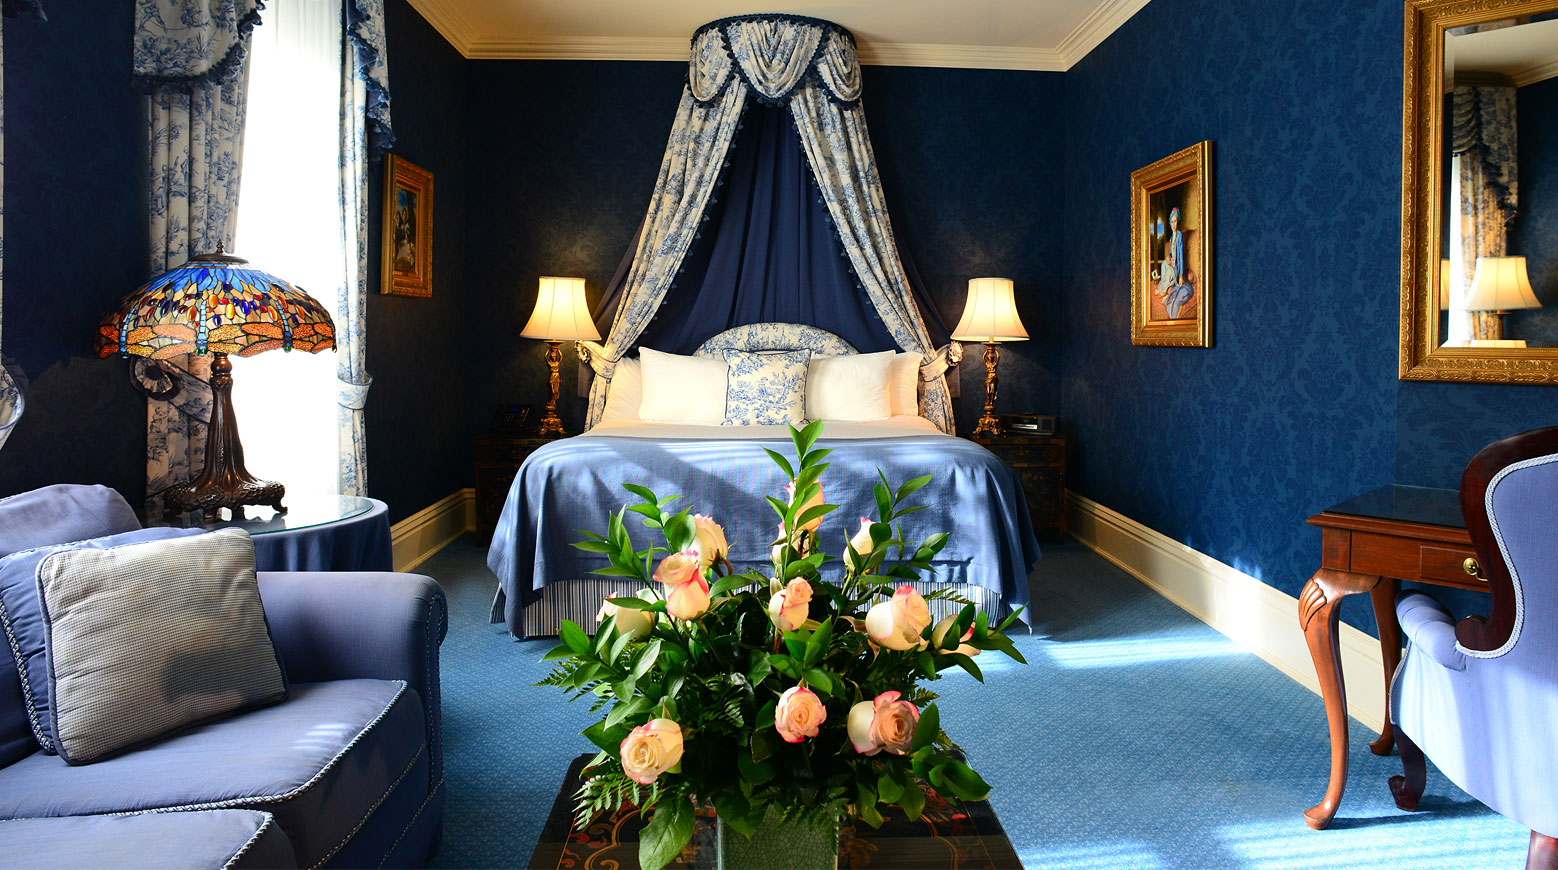 Get Comfortable Staying Experience By Staying At Luxury Hotel